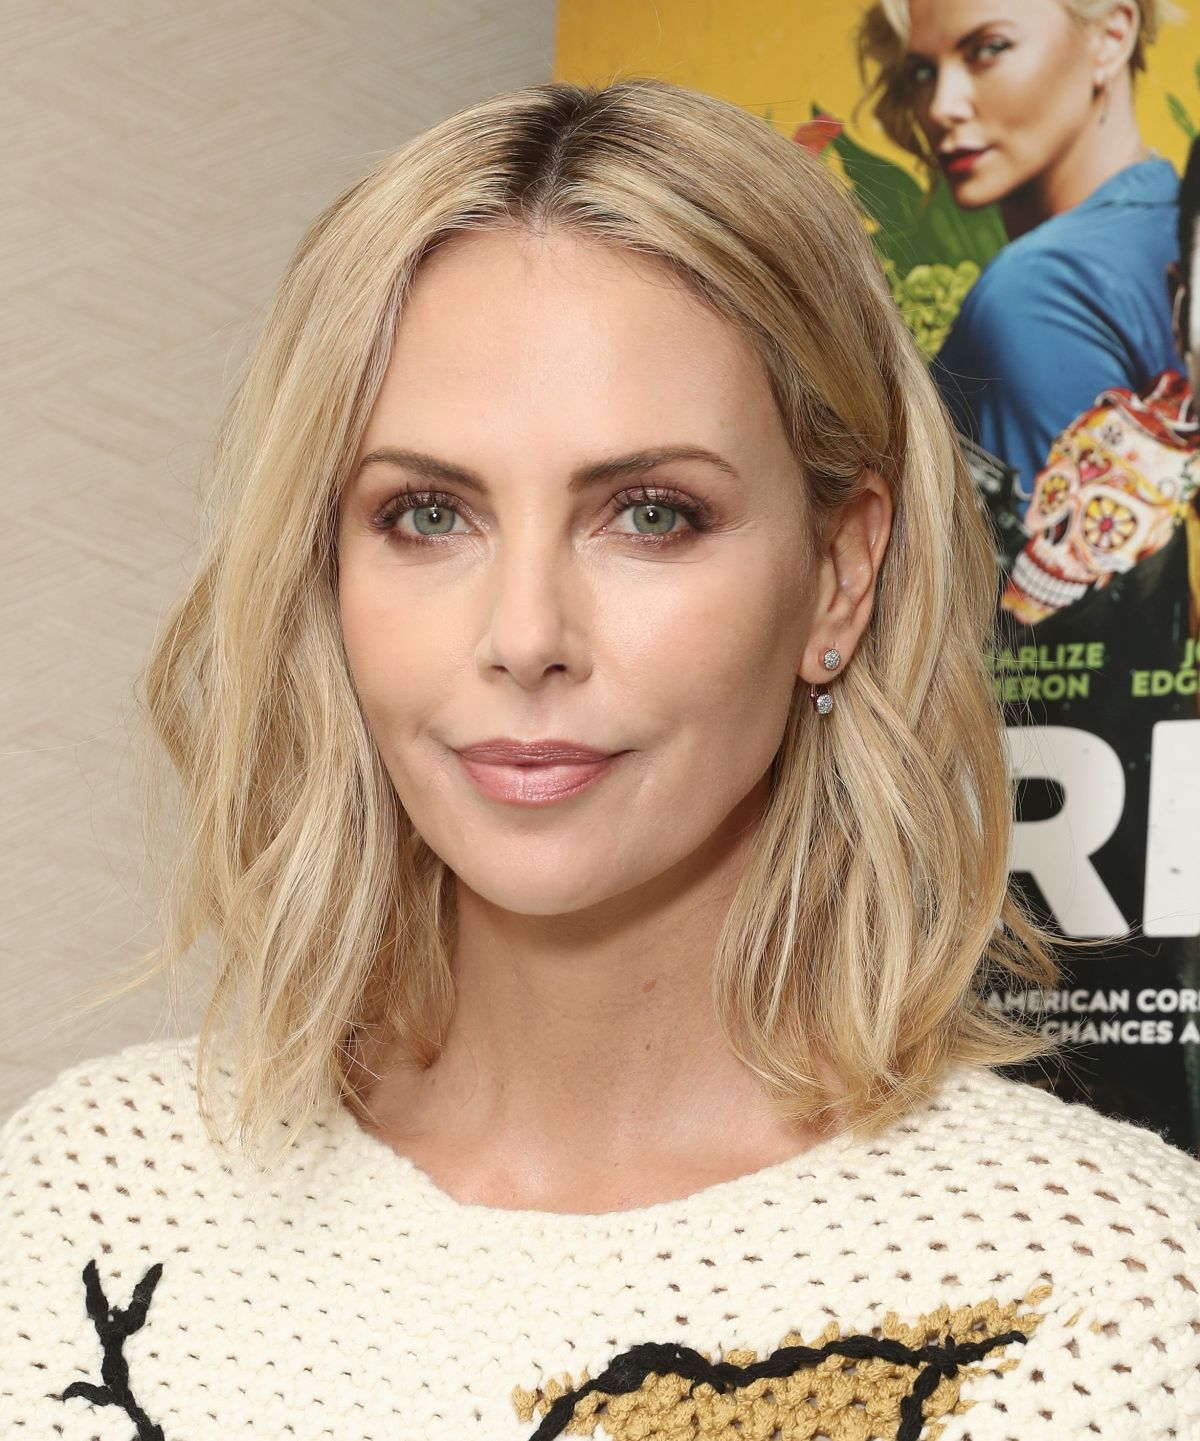 Pin by Erika AAA on CHARLIZE THERON | Charlize theron